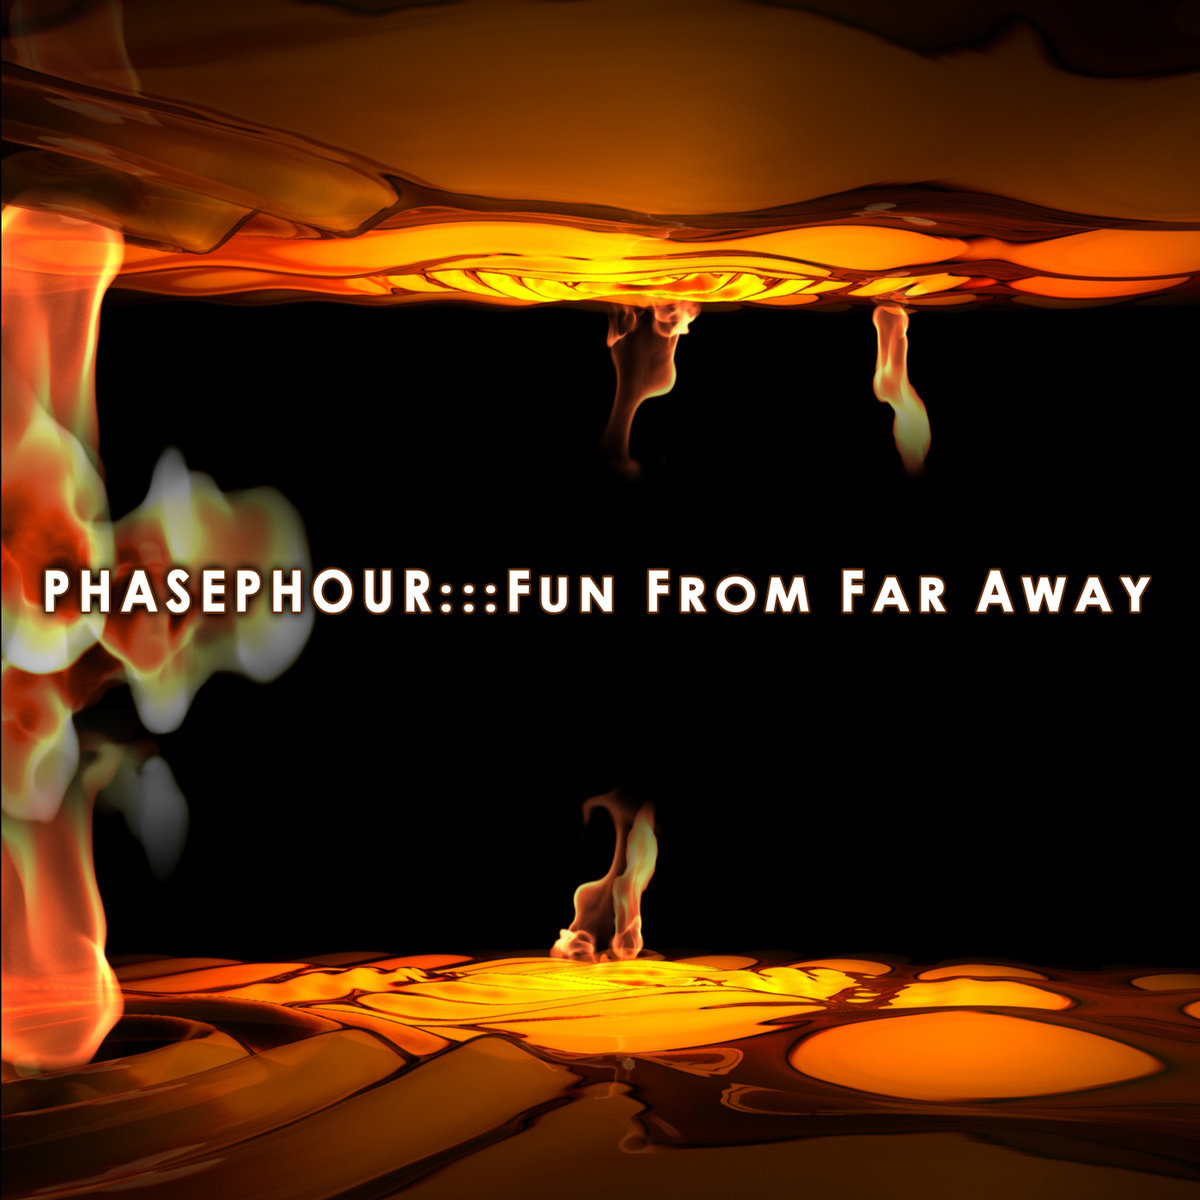 PhasePhour - Fun From Far Away